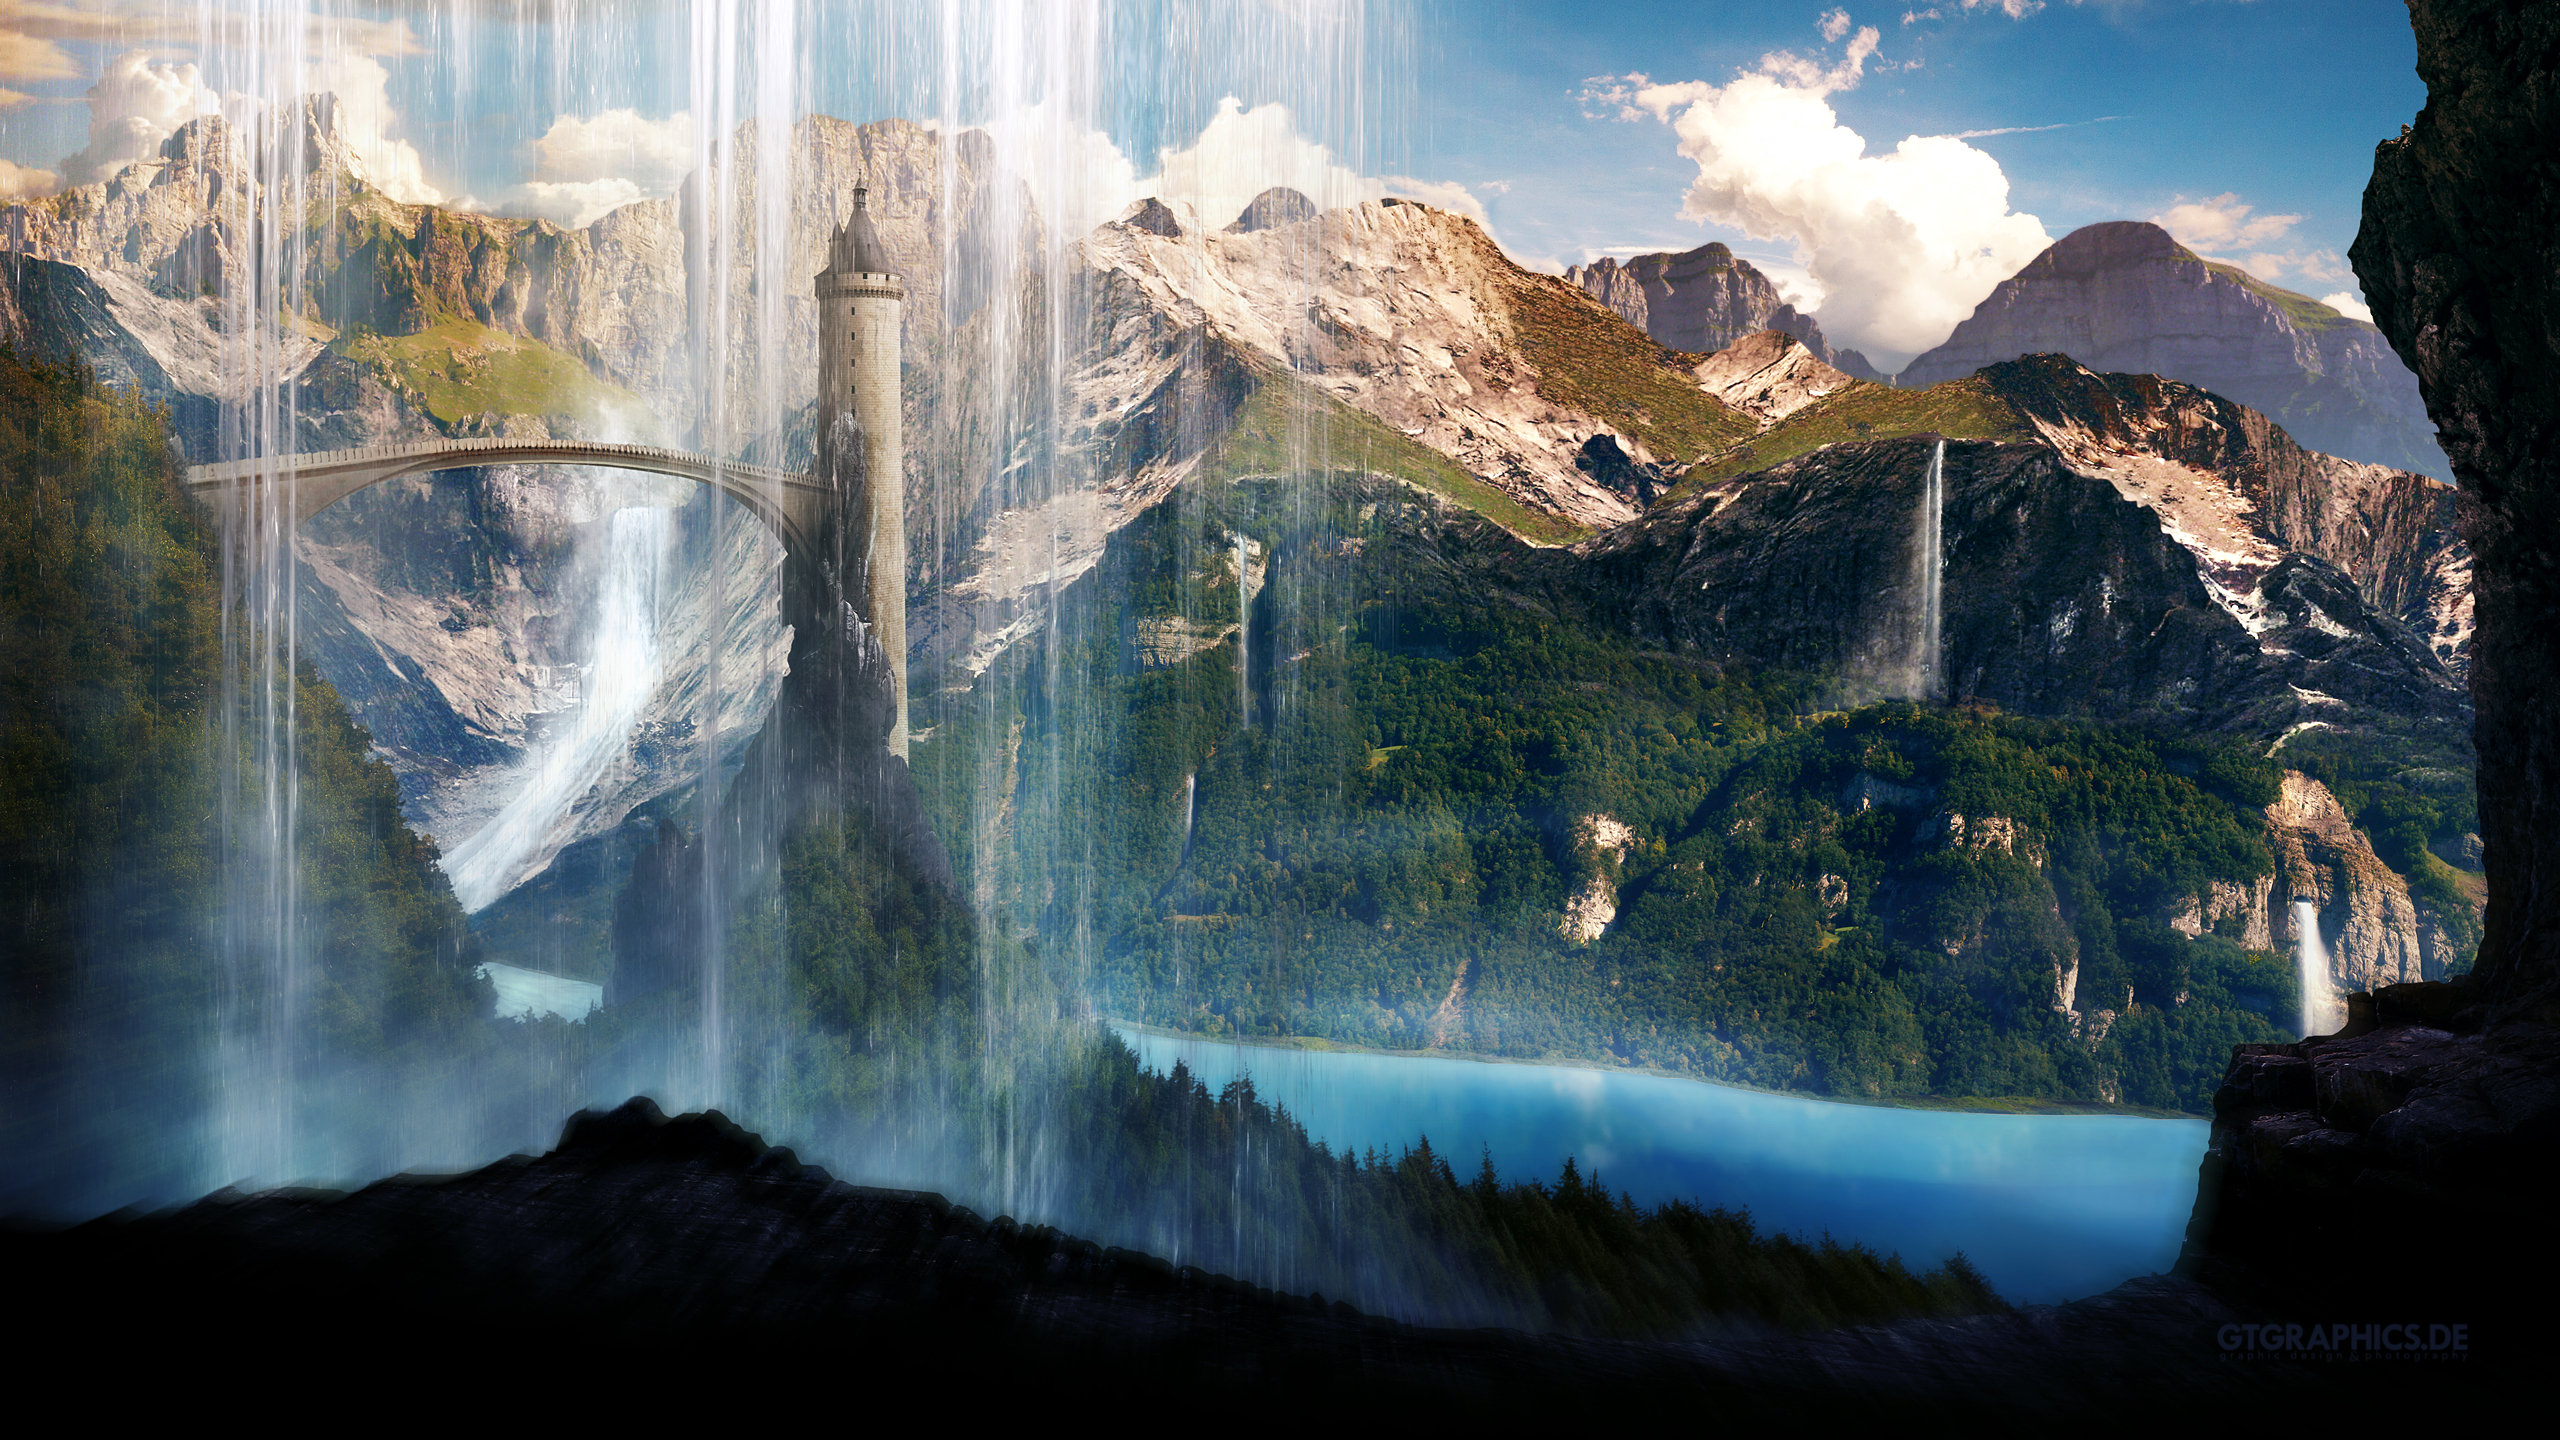 Liquid Curtain